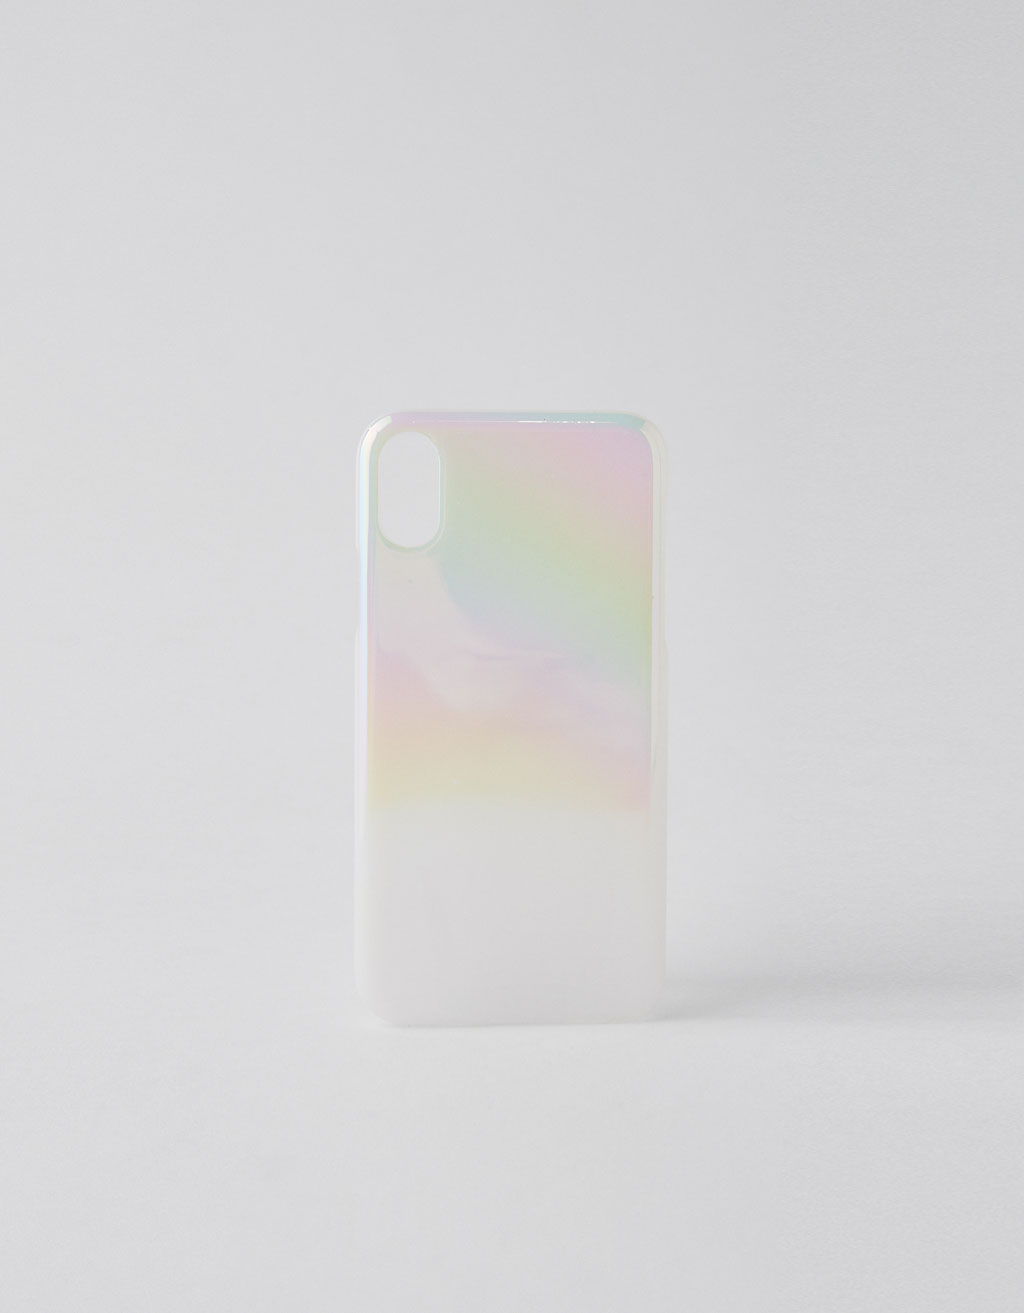 Carcassa iridescent iPhone X